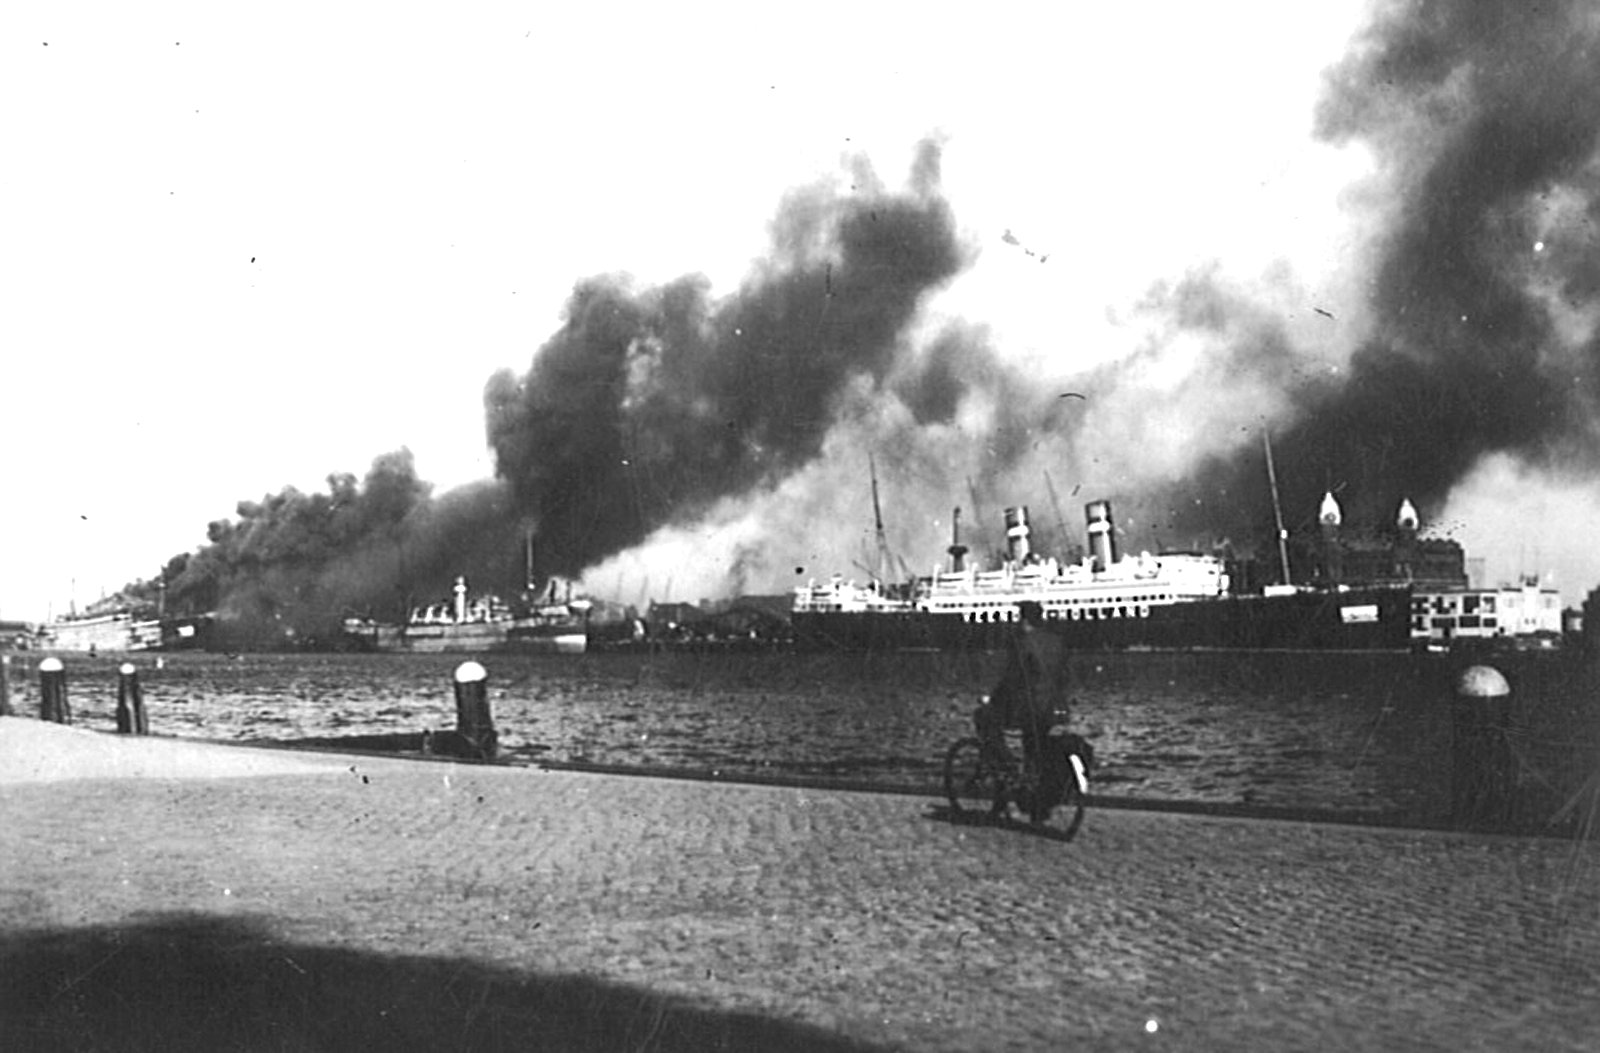 Rotterdam Burning from Simon Bang Collection Google image from http://7seasvessels.com/wp-content/uploads/2012/01/Simon-Bang-Collection-Rotterdam-burning.jpg